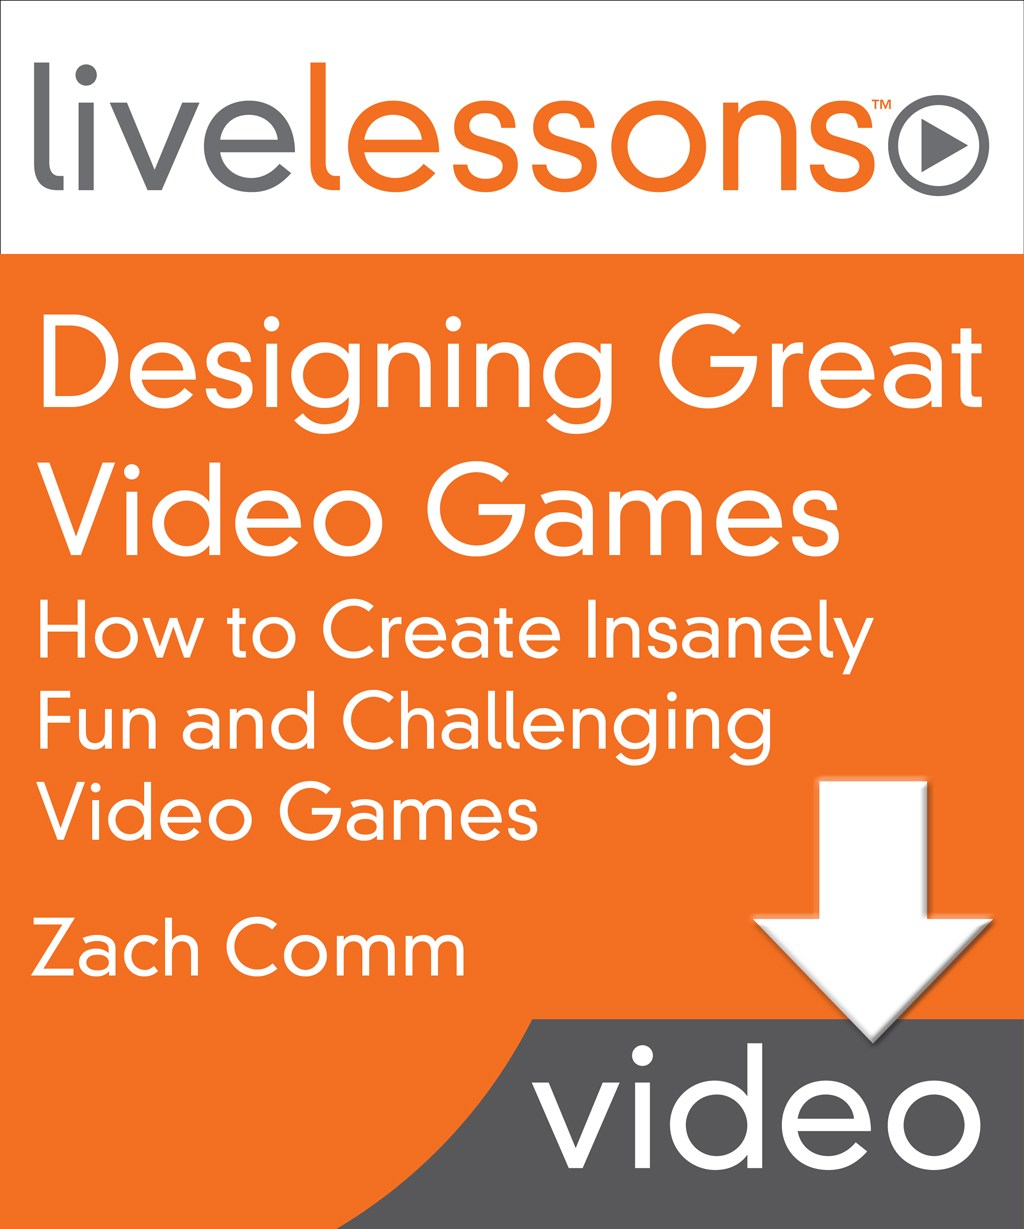 Designing Great Video Games LiveLessons (Video Training): How to Create Insanely Fun and Challenging Video Games